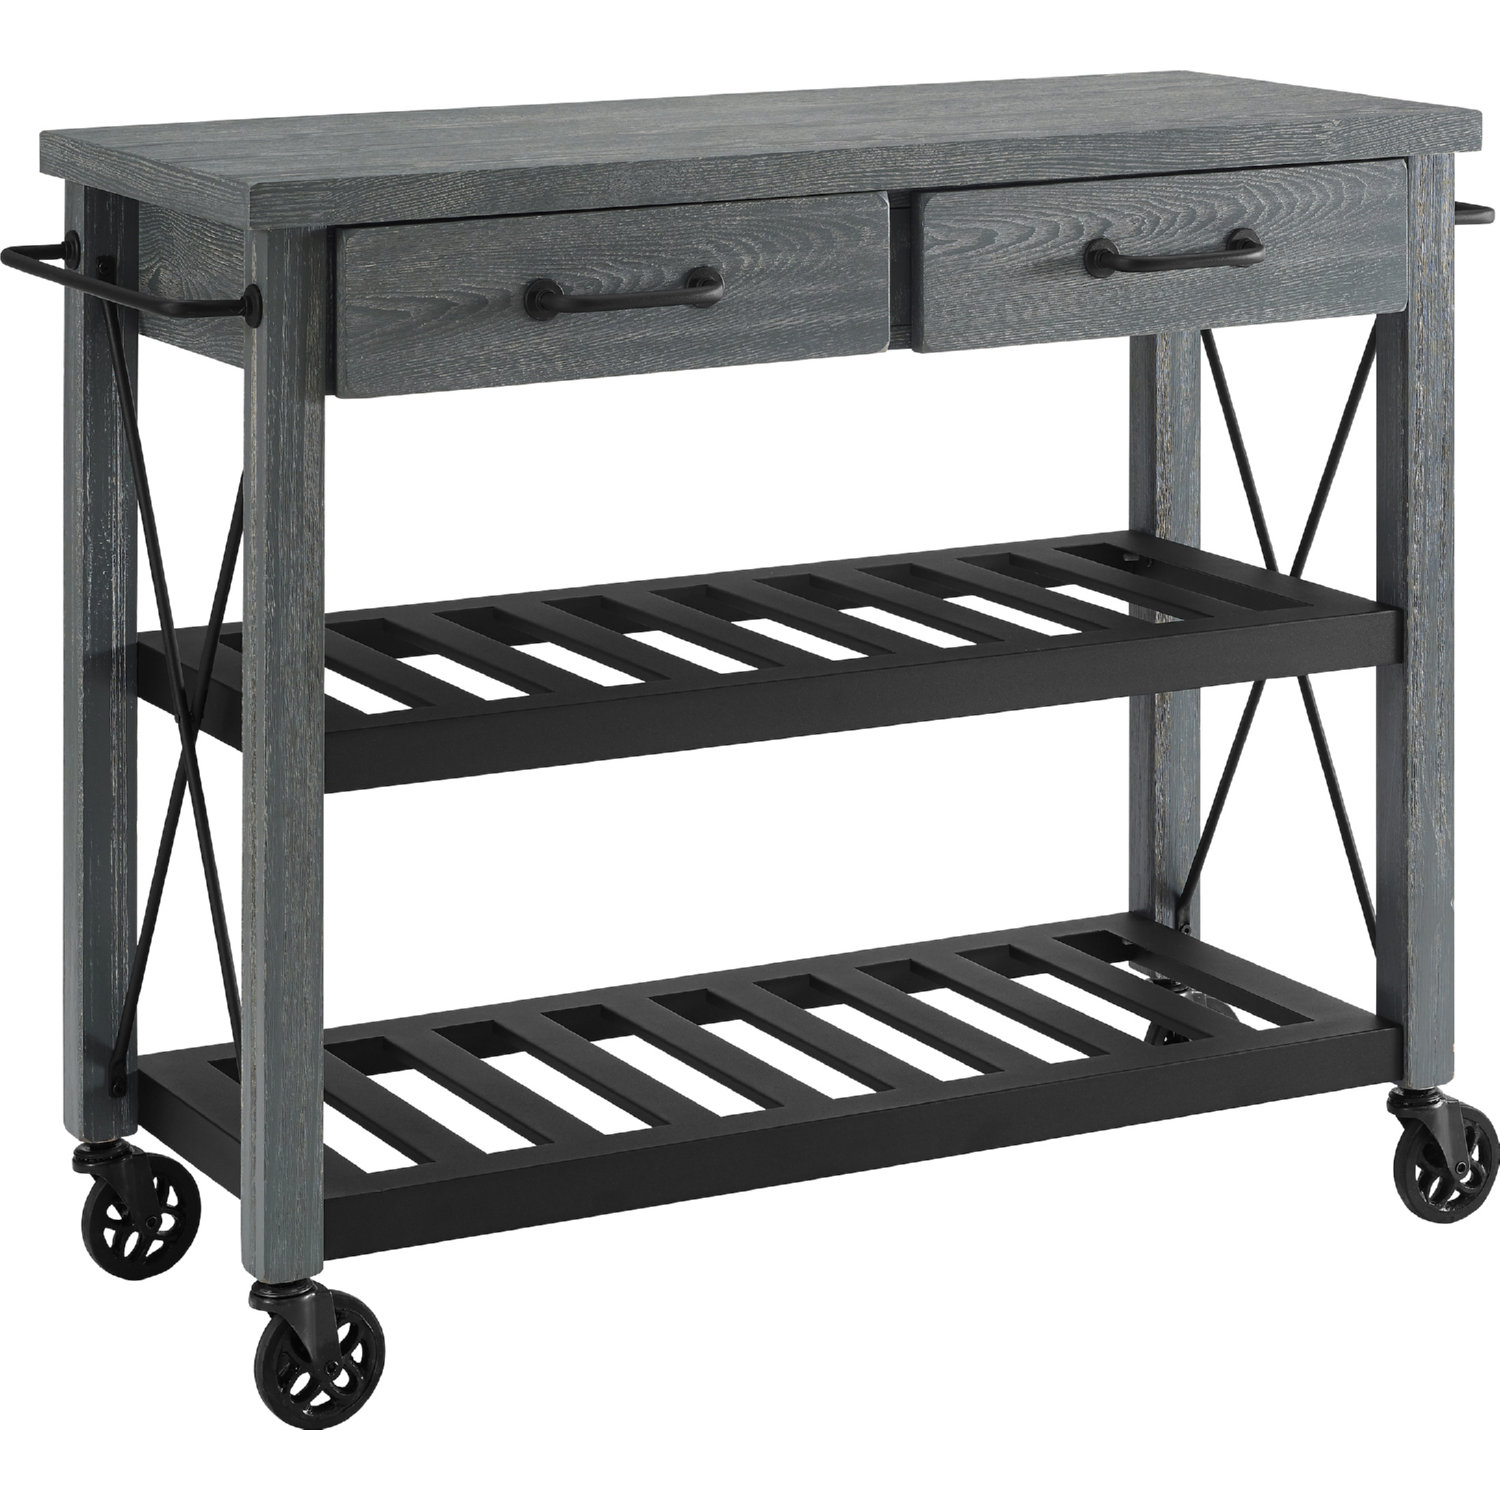 Crosley Furniture Cf3008 Na Roots Rack Industrial Kitchen Cart: Crosley CF3008-GY Roots Rack Kitchen Cart In Grey Finish